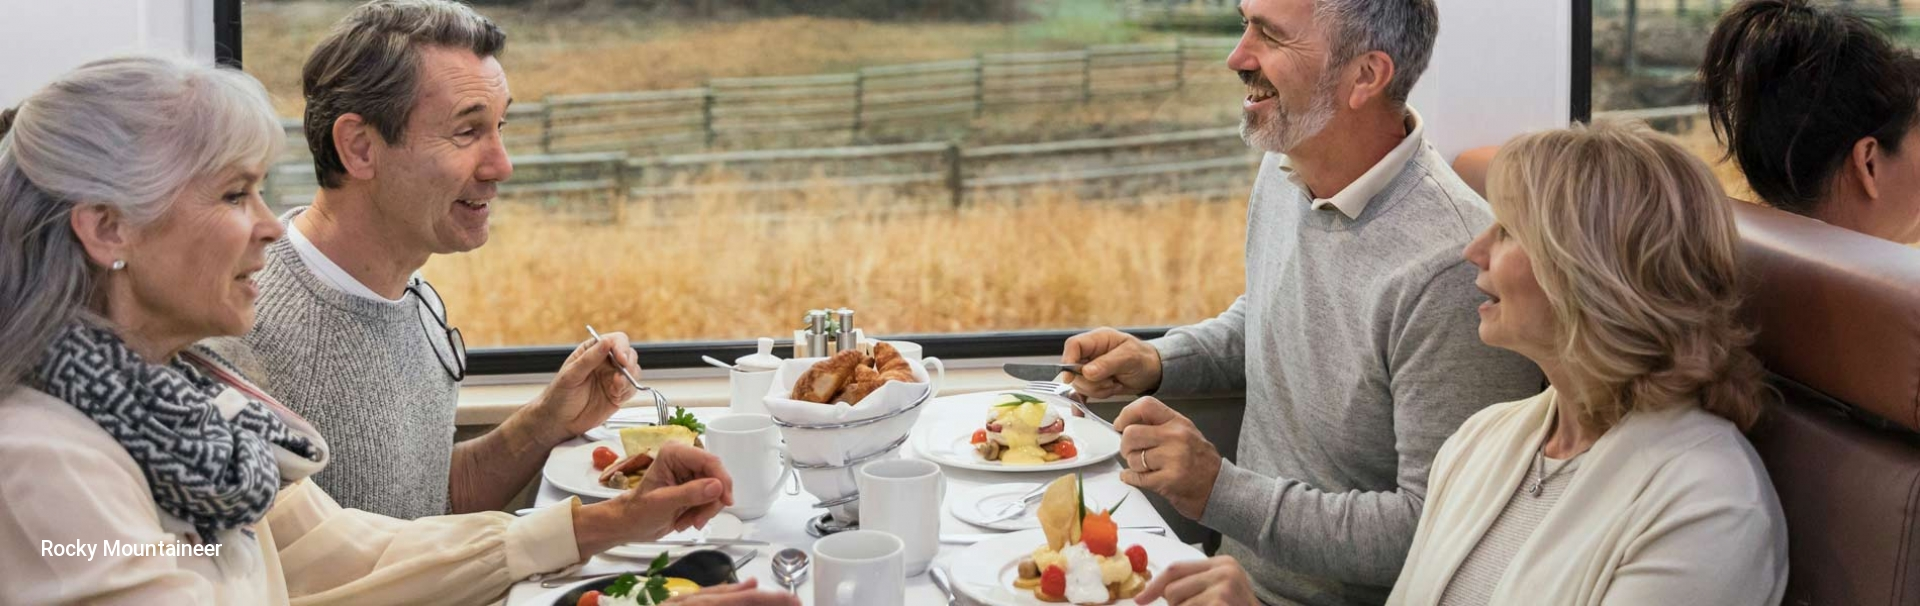 Dining in the Rocky Mountaineer Gold Leaf Service